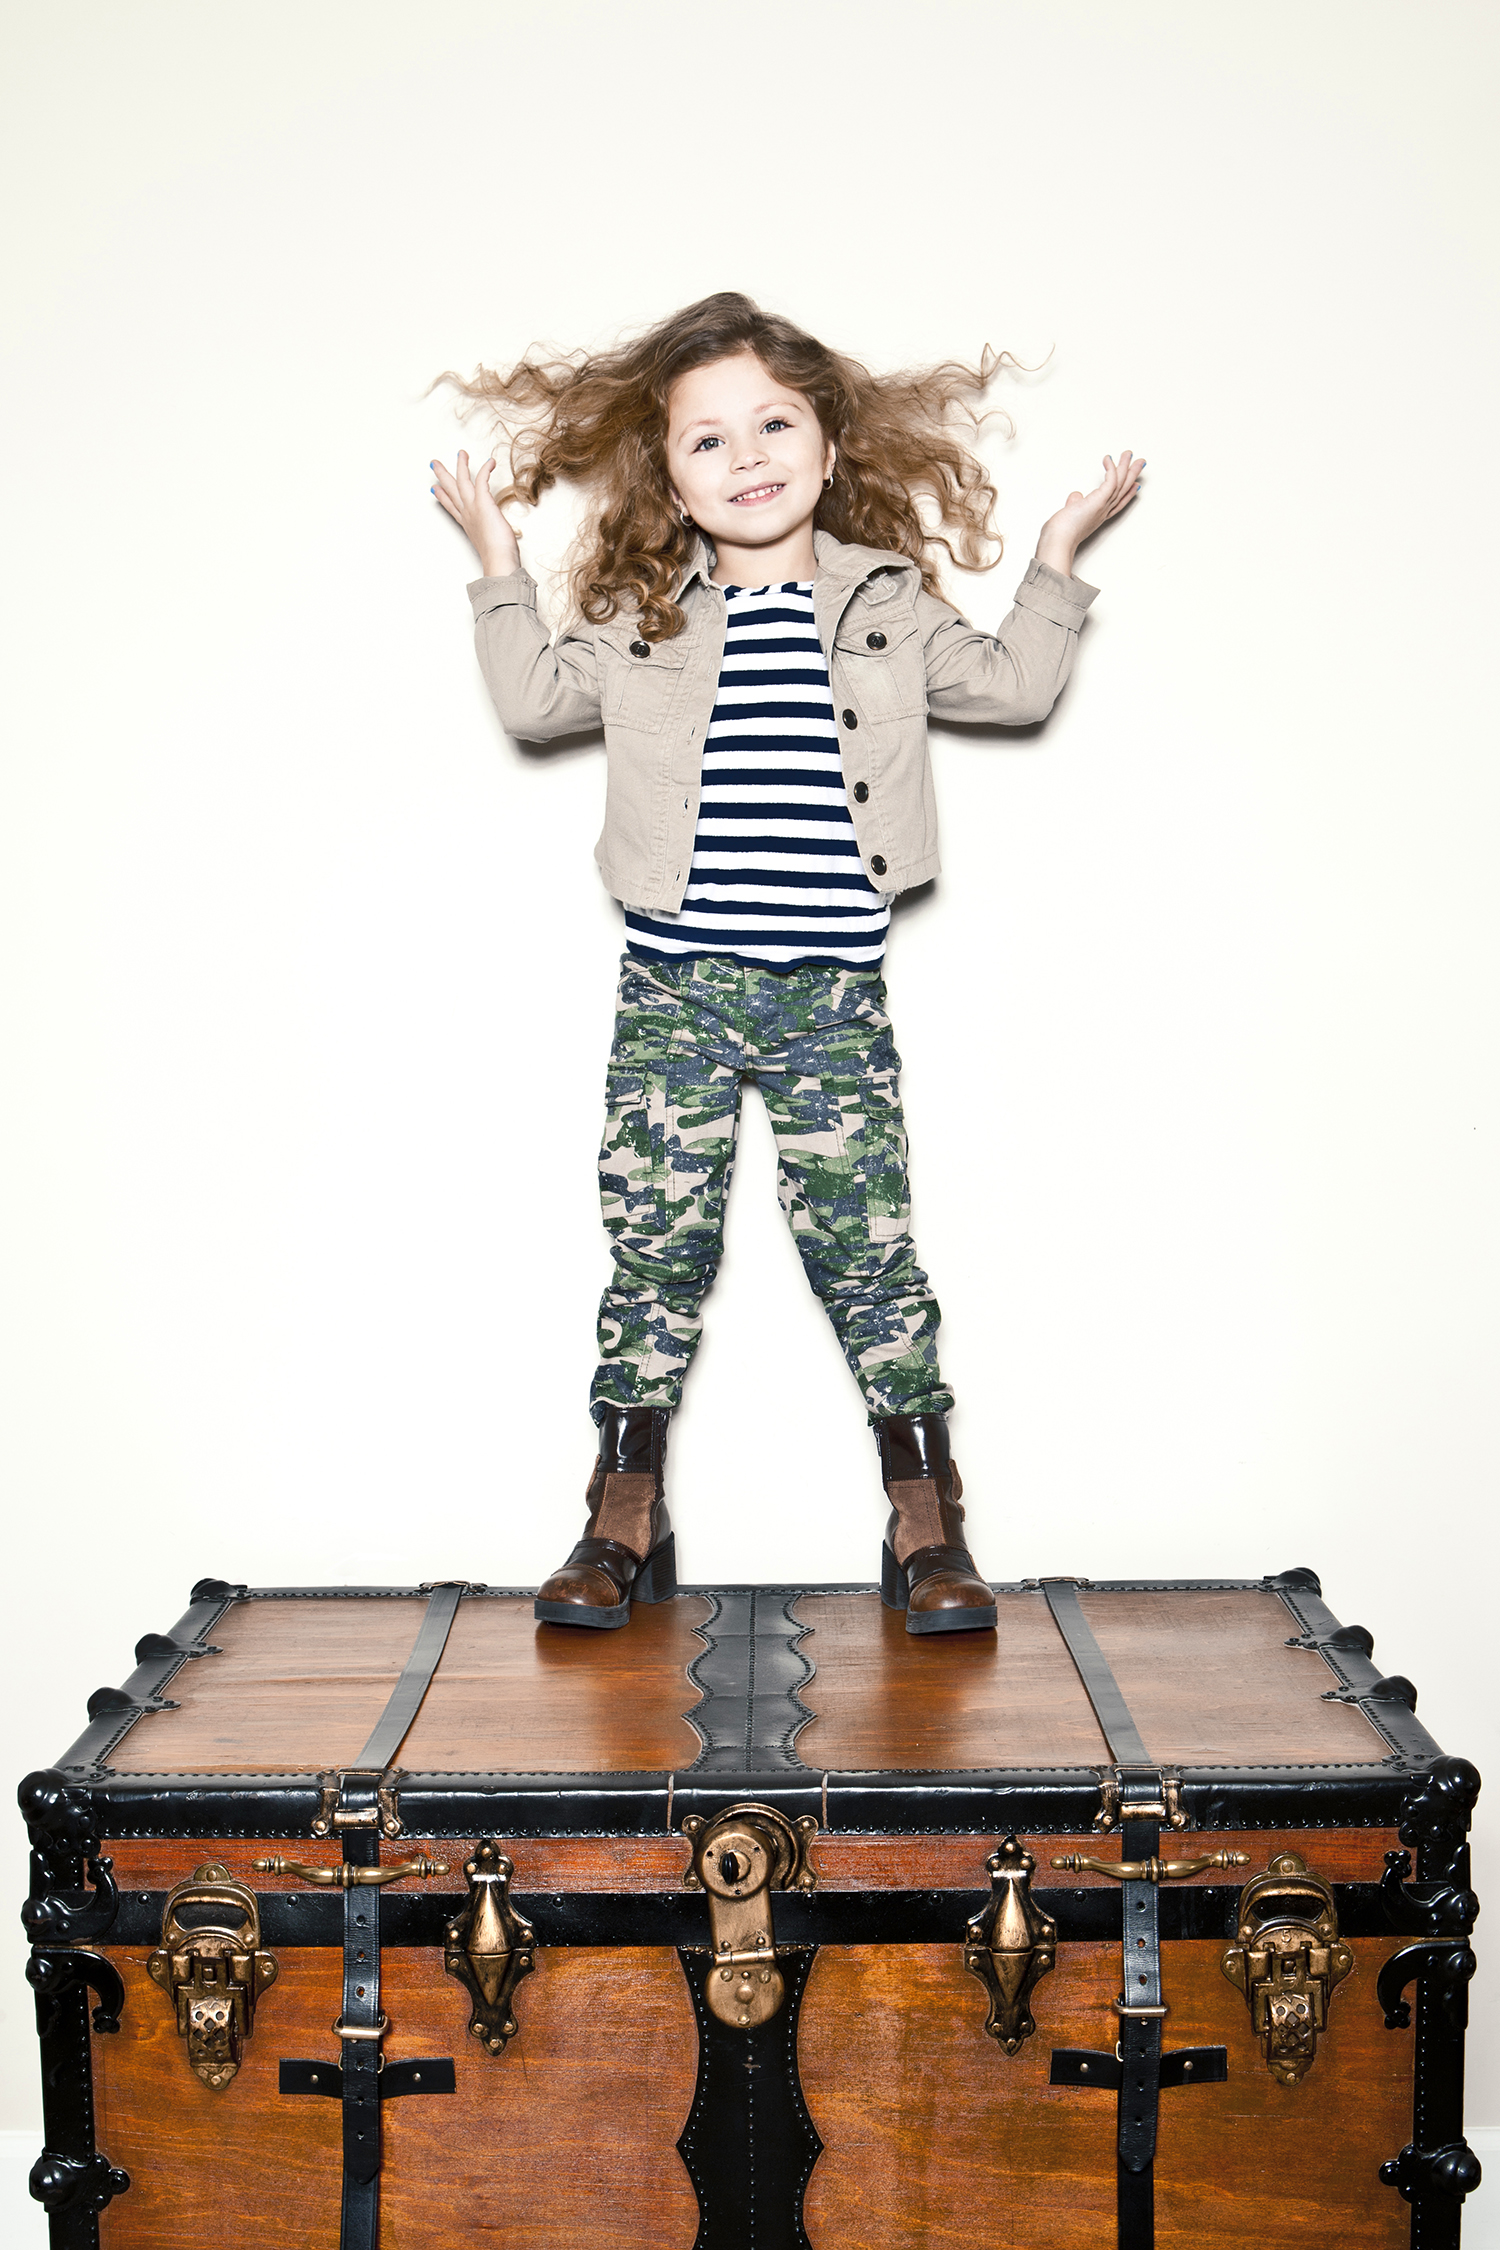 lifestyle-editorial-children-washington-dc-malek-naz-photography-contempo-kids-curly-girl.jpg